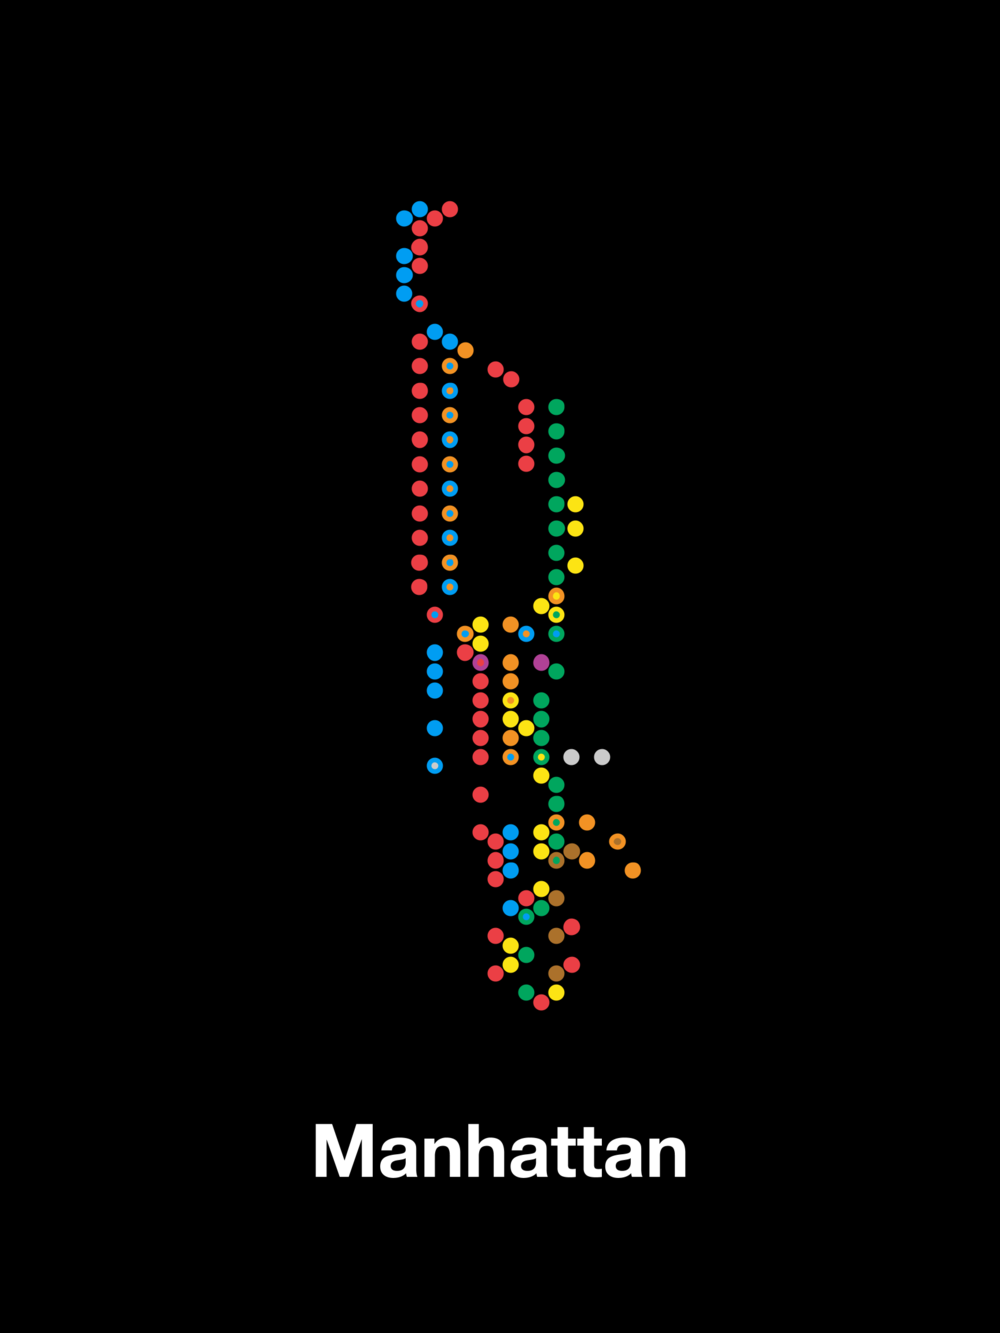 Manhattan subway stations